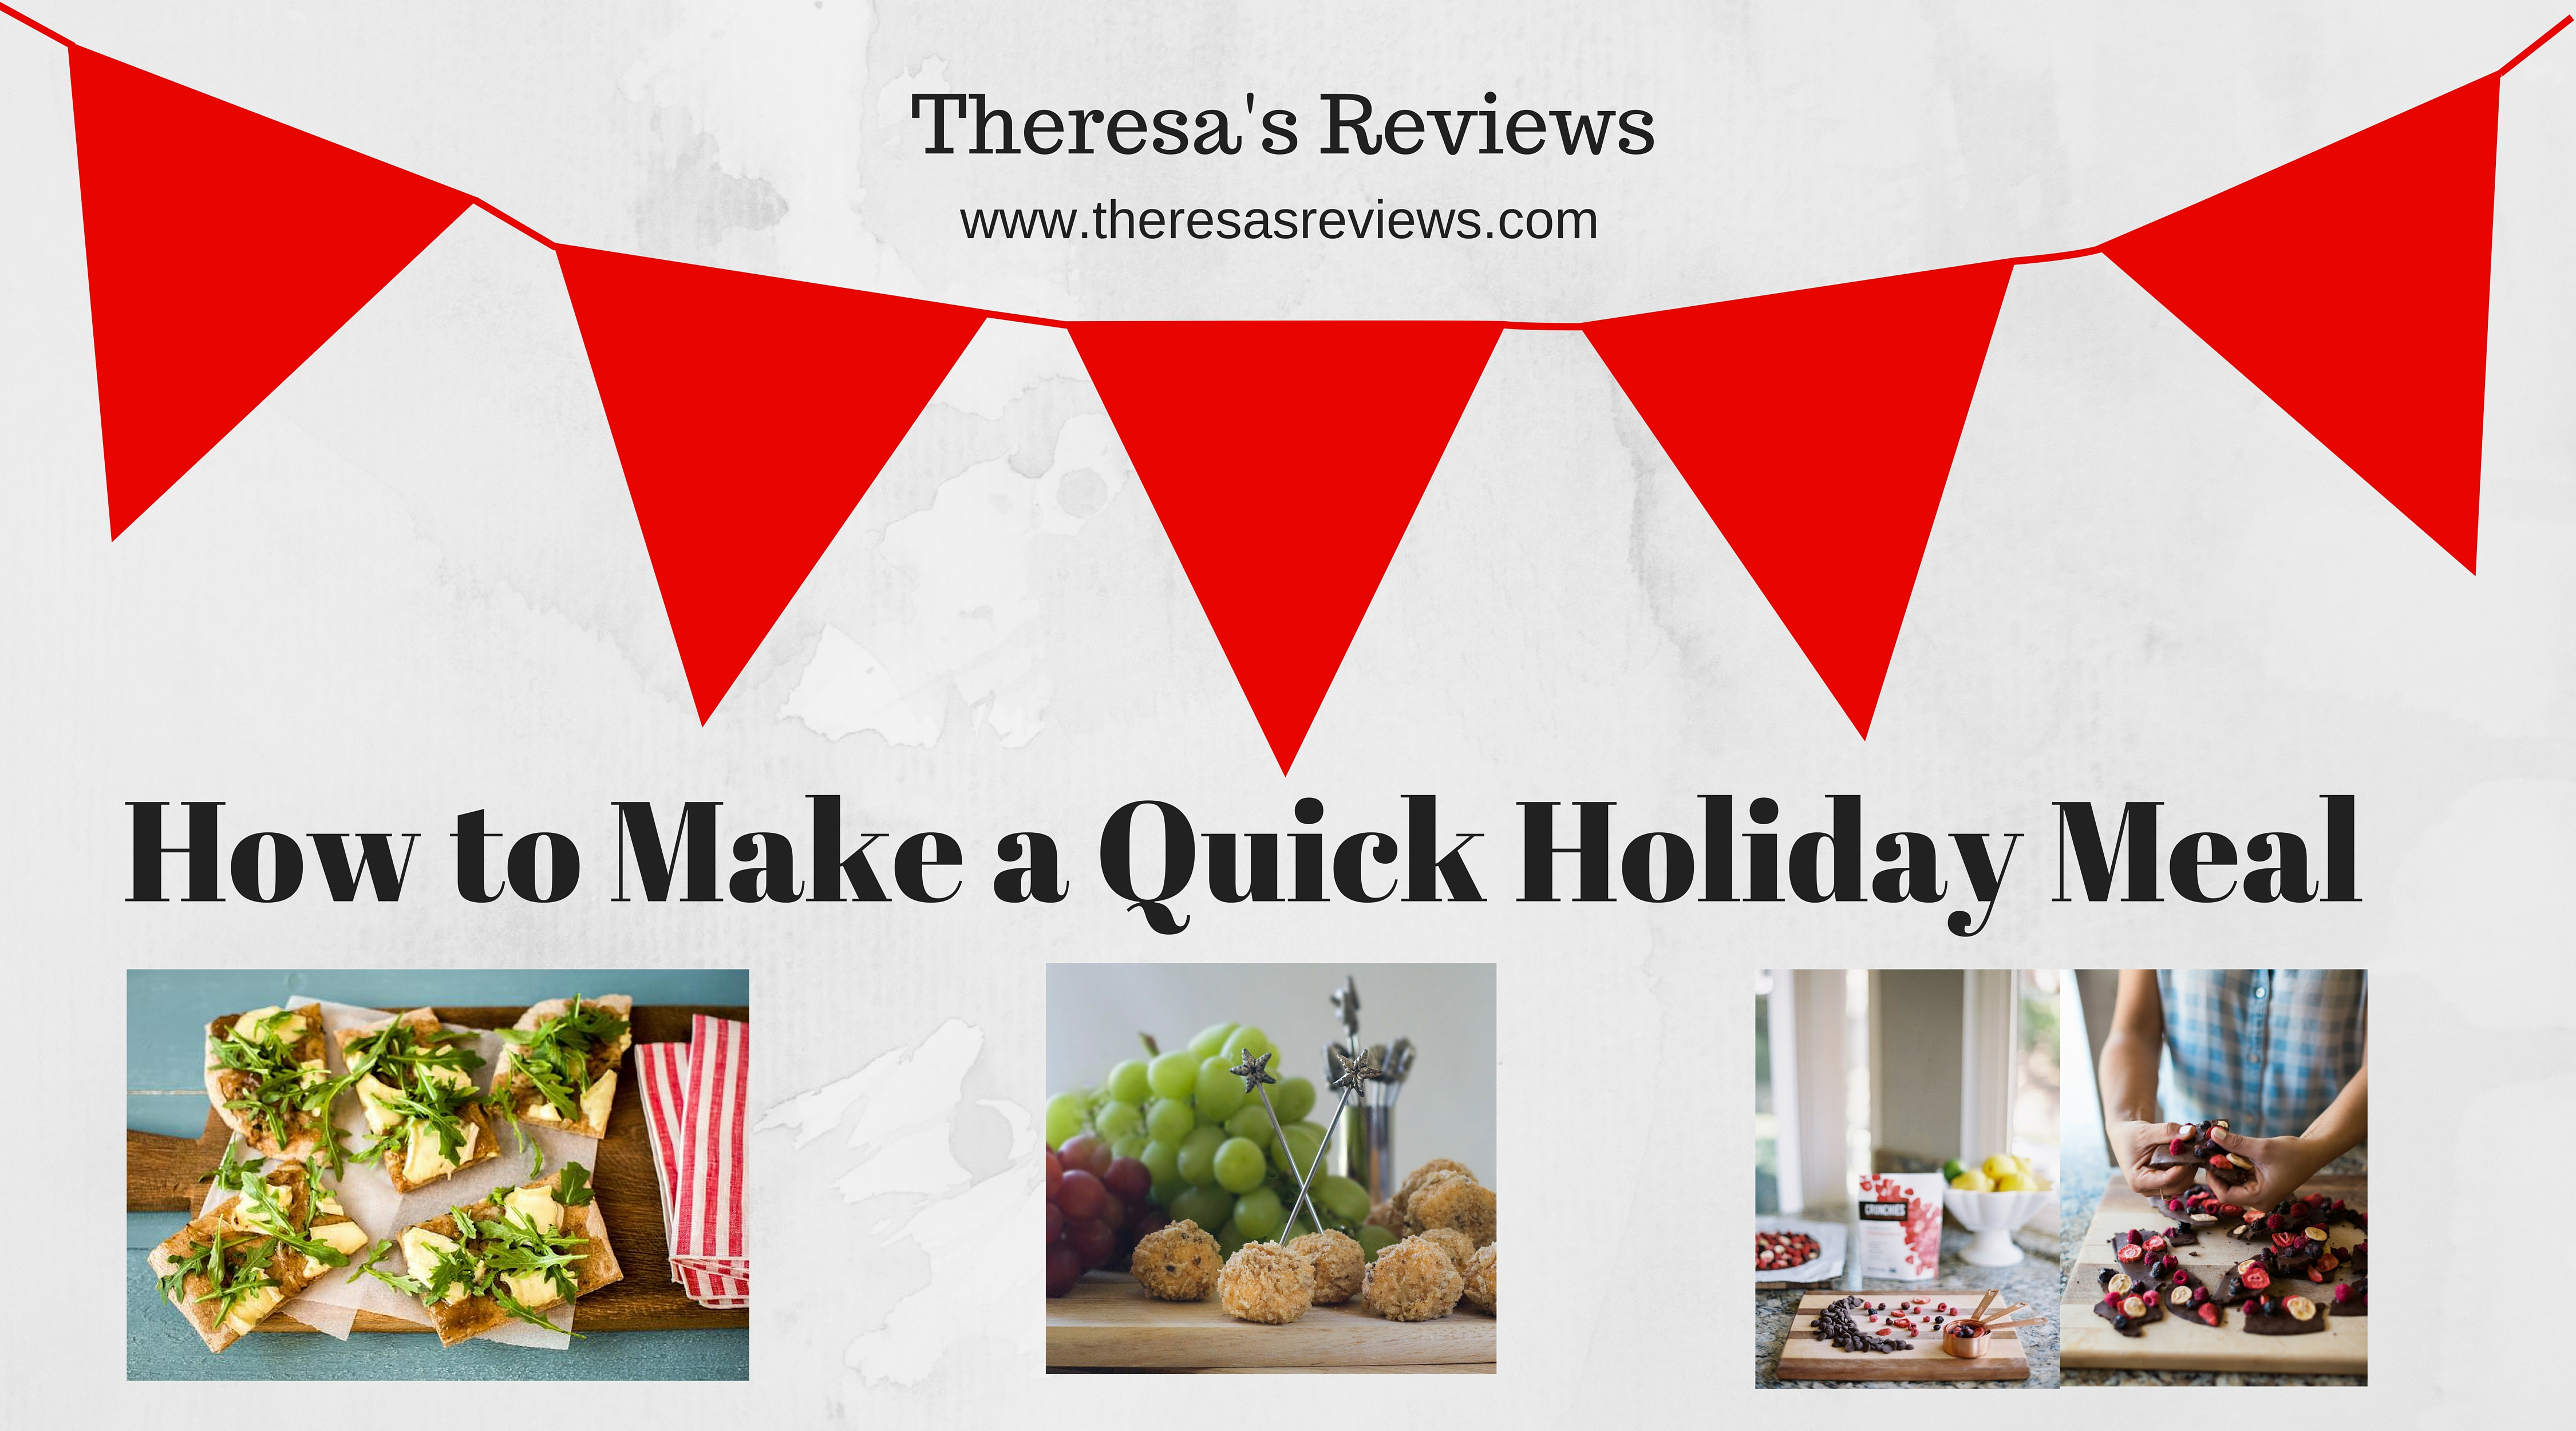 How to Make a Quick Holiday Meal - at Theresa's Reviews - www.theresasreviews.com #cooking #meals #food #holidays